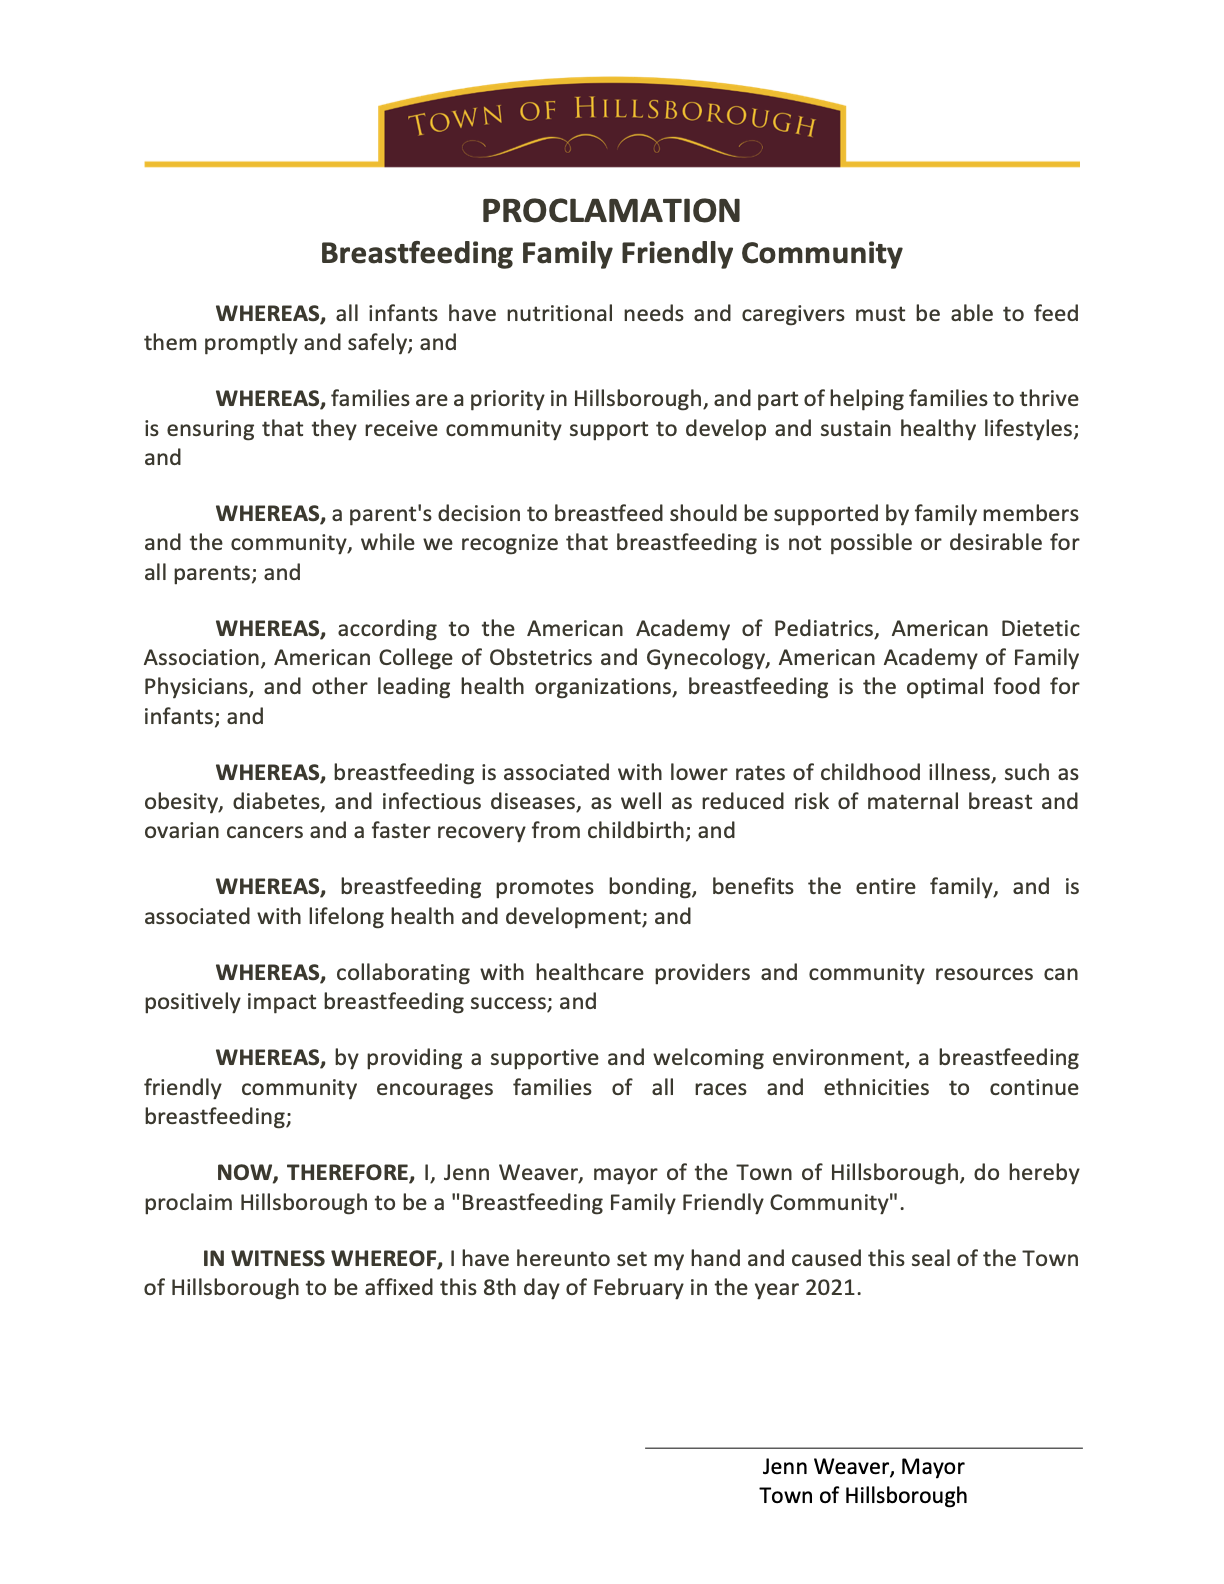 """Text: Town of Hillsborough, PROCLAMATION, Breastfeeding Family Friendly Community WHEREAS, all infants have nutritional needs and caregivers must be able to feed them promptly and safely; and WHEREAS, families are a priority in Hillsborough, and part of helping families to thrive is ensuring that they receive community support to develop and sustain healthy lifestyles; and WHEREAS, a parent's decision to breastfeed should be supported by family members and the community, while we recognize that breastfeeding is not possible or desirable for all parents; and WHEREAS, according to the American Academy of Pediatrics, American Dietetic Association, American College of Obstetrics and Gynecology, American Academy of Family Physicians, and other leading health organizations, breastfeeding is the optimal food for infants; and WHEREAS, breastfeeding is associated with lower rates of childhood illness, such as obesity, diabetes, and infectious diseases, as well as reduced risk of maternal breast and ovarian cancers and a faster recovery from childbirth; and WHEREAS, breastfeeding promotes bonding, benefits the entire family, and is associated with lifelong health and development; and WHEREAS, collaborating with healthcare providers and community resources can positively impact breastfeeding success; and WHEREAS, by providing a supportive and welcoming environment, a breastfeeding friendly community encourages families of all races and ethnicities to continue breastfeeding; NOW, THEREFORE, I, Jenn Weaver, mayor of the Town of Hillsborough, do hereby proclaim Hillsborough to be a """"Breastfeeding Family Friendly Community"""". IN WITNESS WHEREOF, I have hereunto set my hand and caused this seal of the Town of Hillsborough to be affixed this 8th day of February in the year 2021. Jenn Weaver, Mayor Town of Hillsborough"""